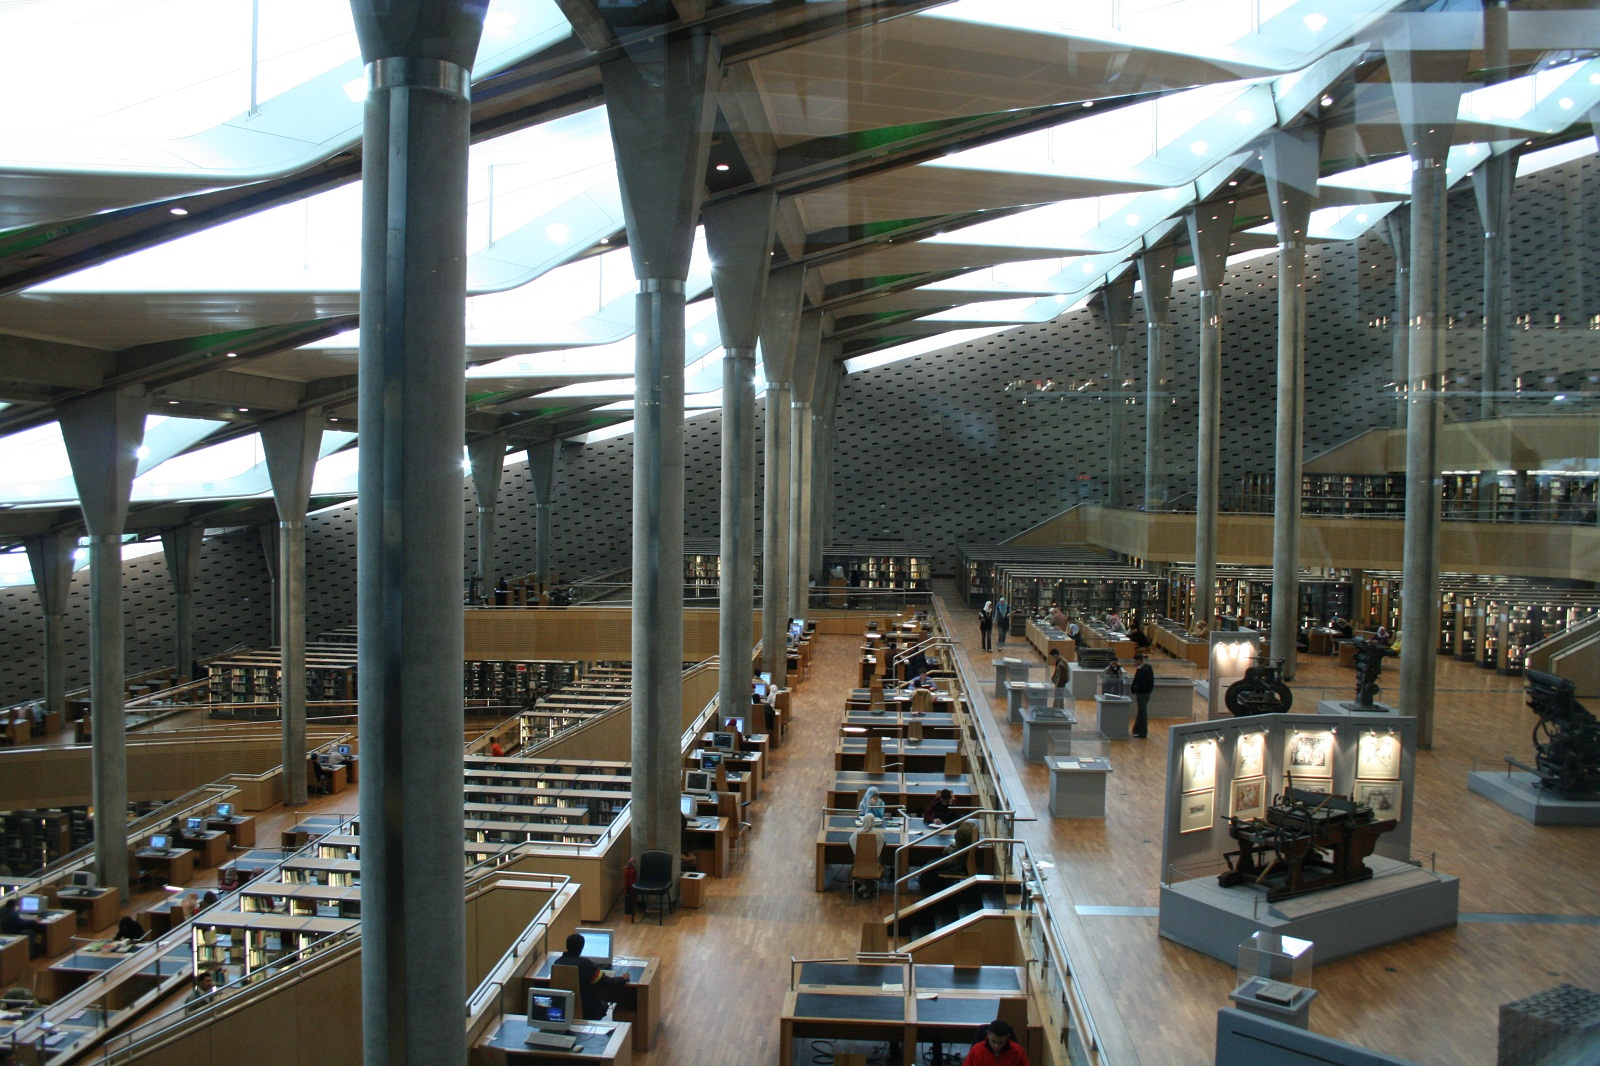 Bibliotheca Alexandrina, Egypt, Interior view of read room